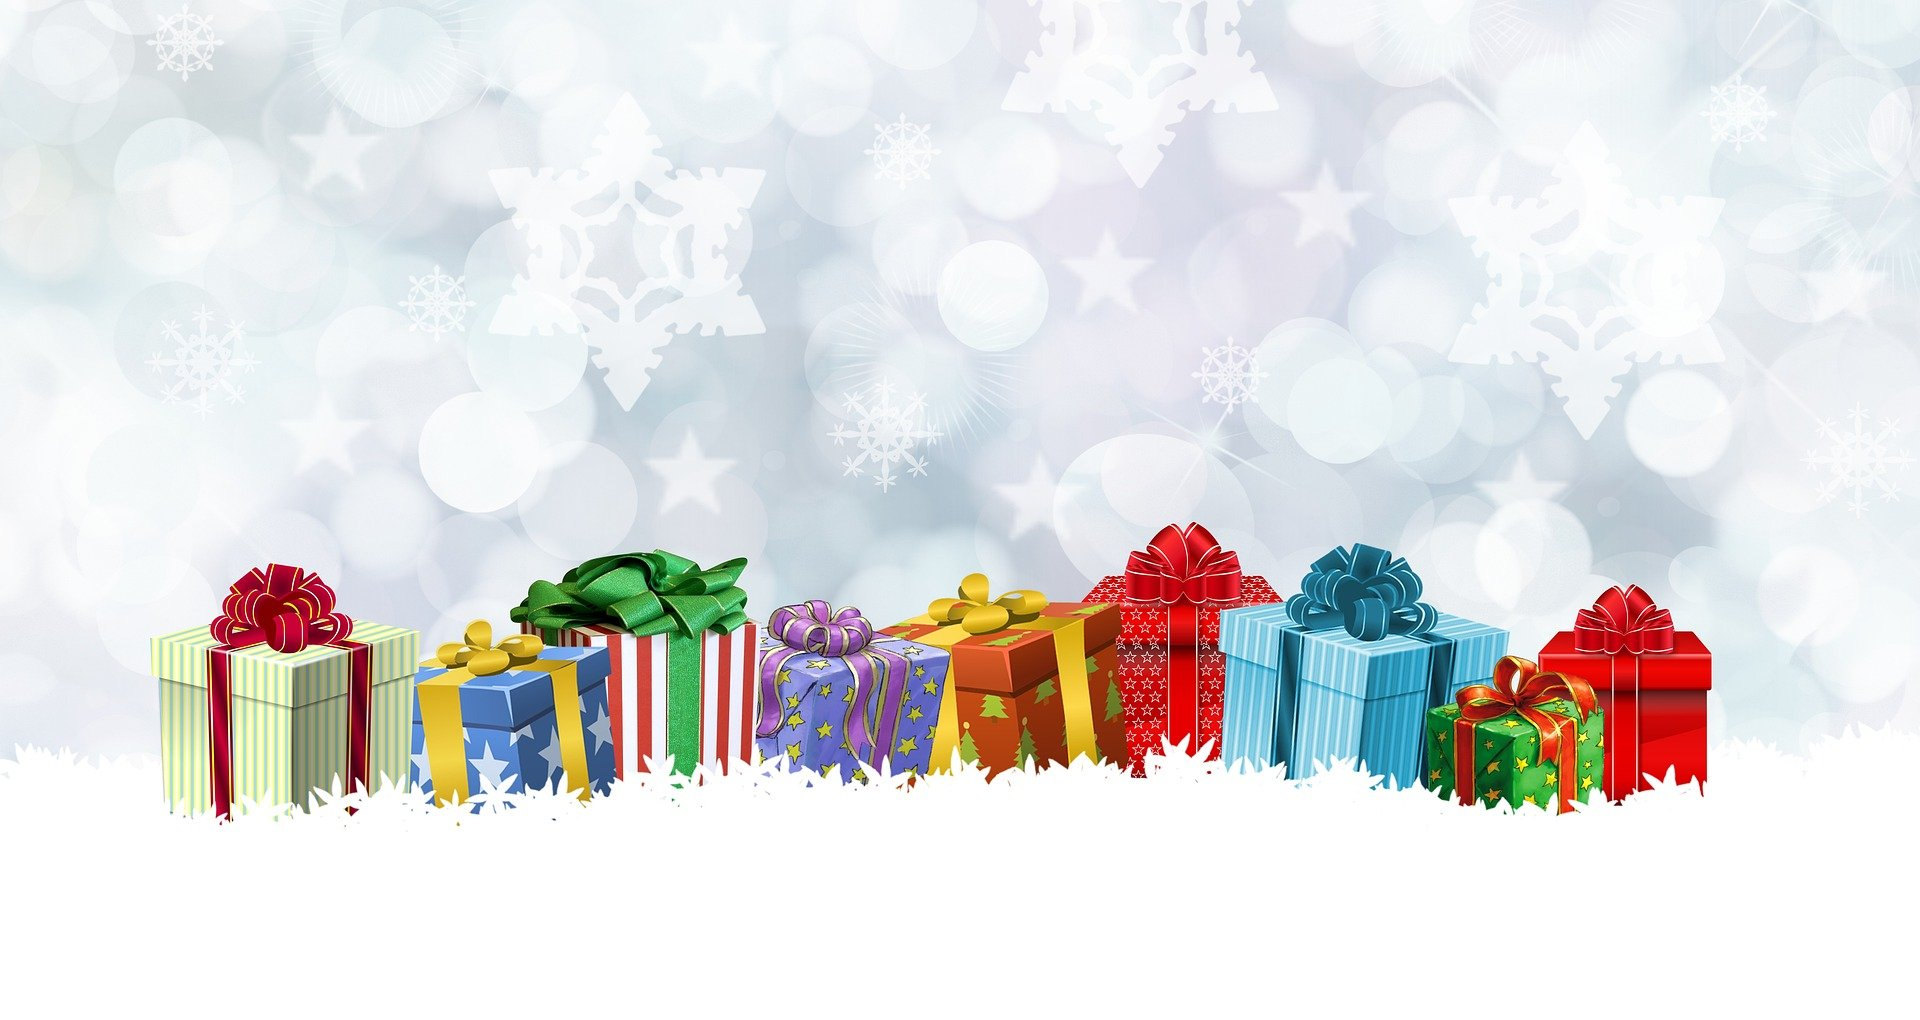 merry christmas day 2021 background